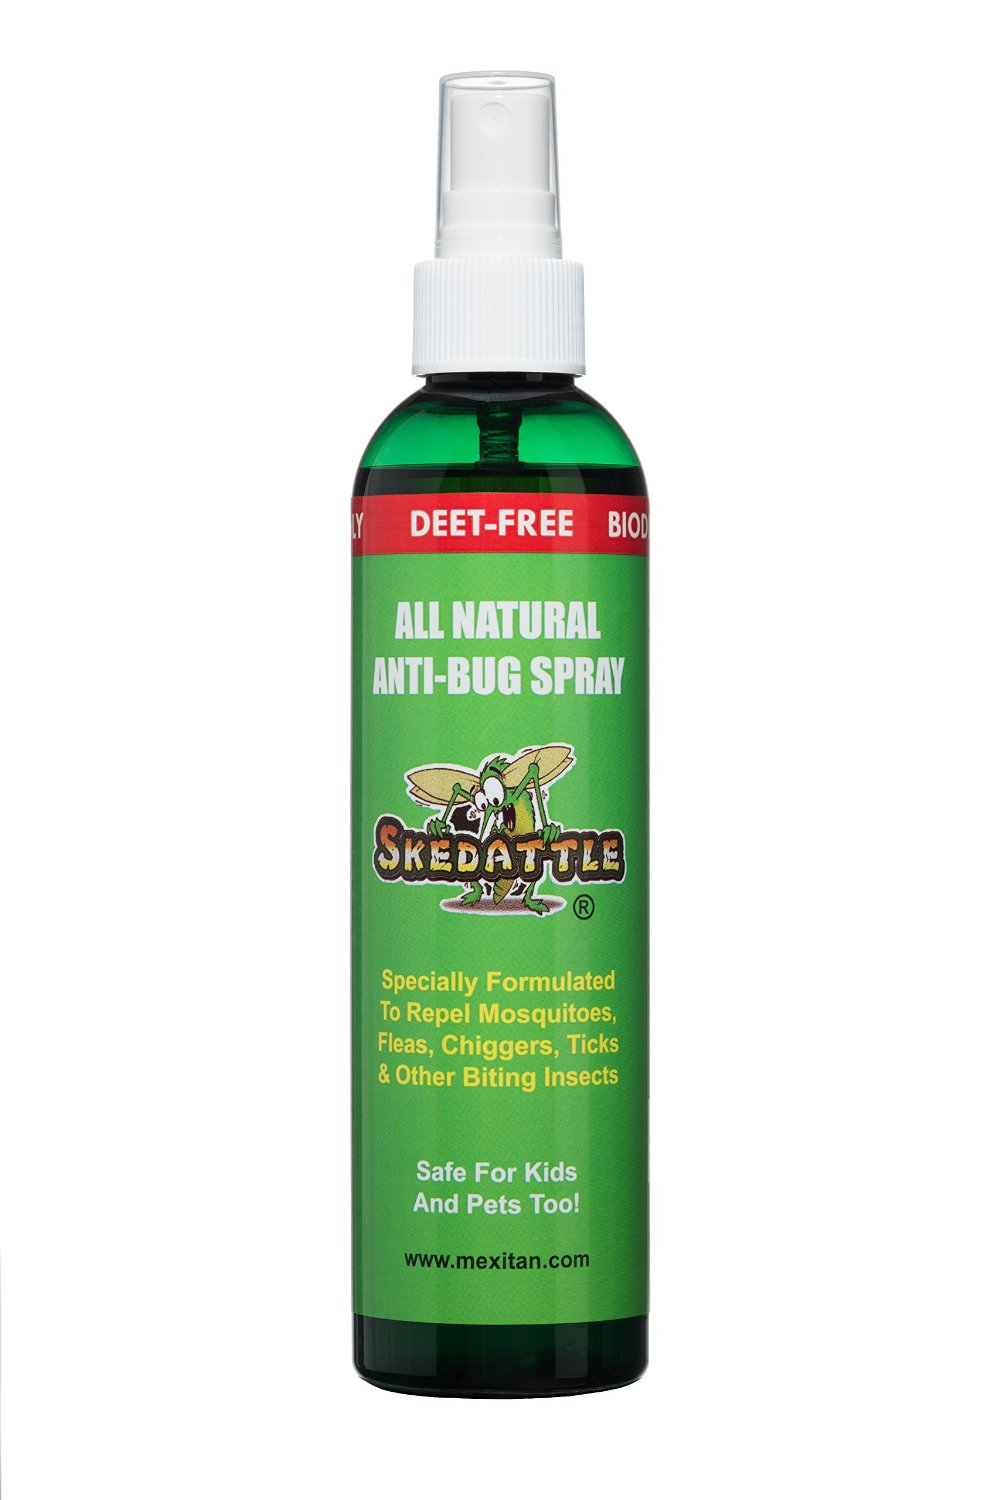 3. Skedattle All Natural Insect Repellent with Essential Oils: